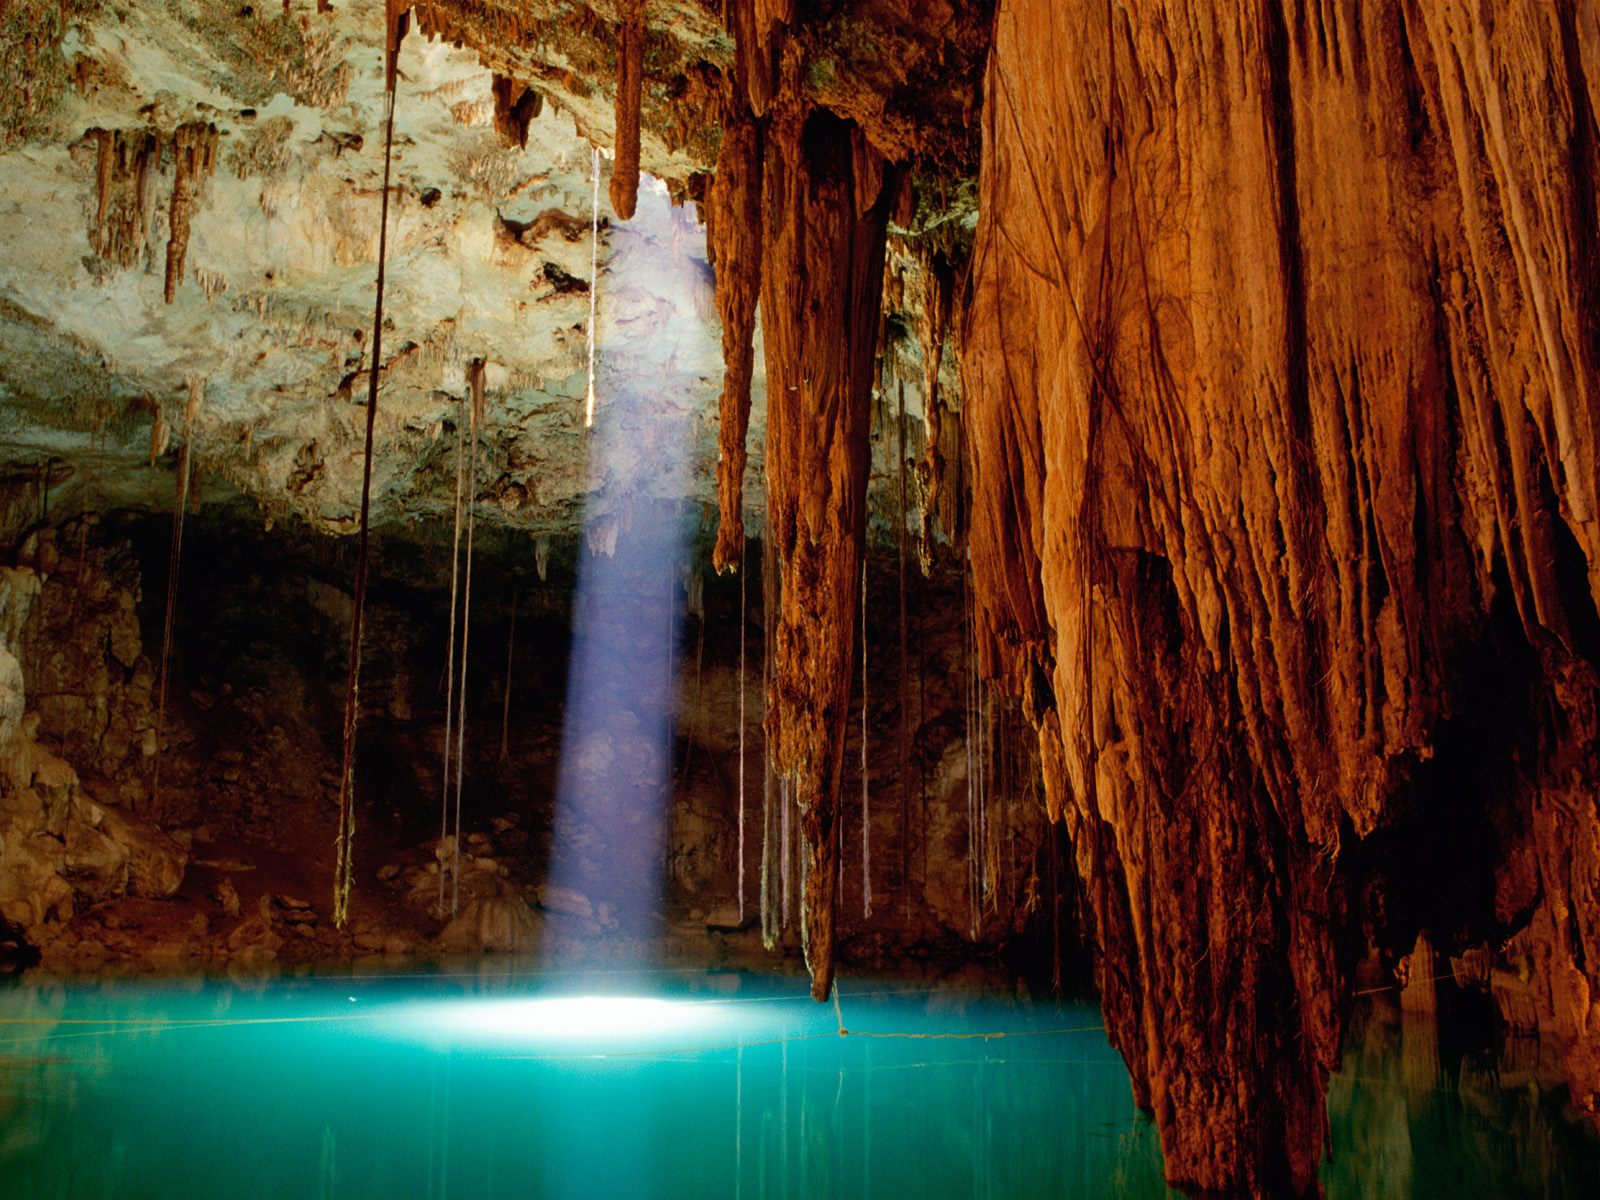 Cenote Dzitnup Mexico 325.45 Kb